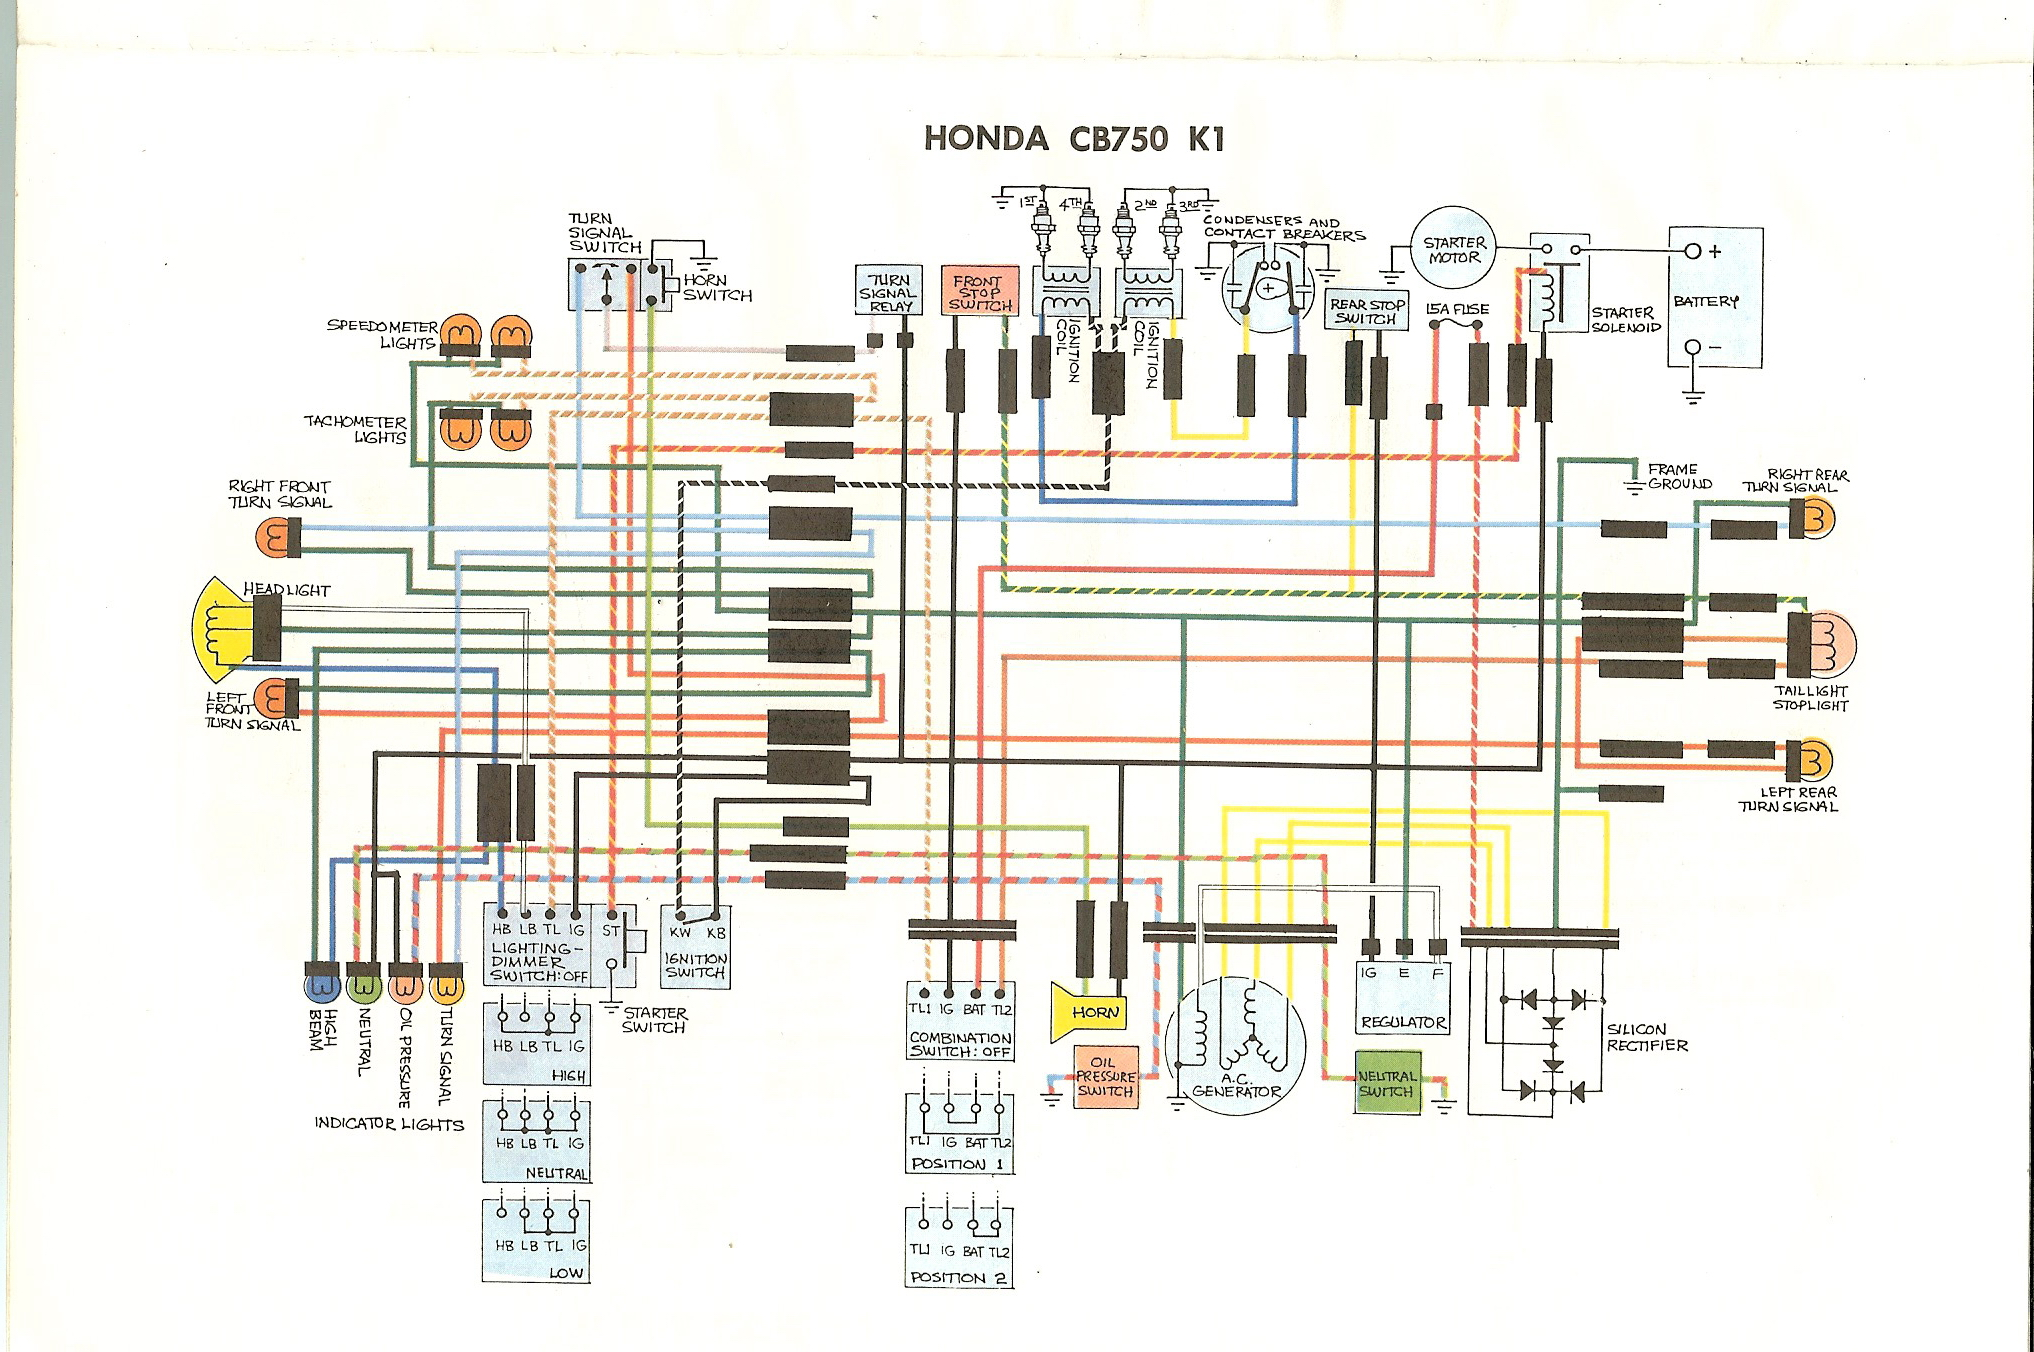 WD750K1?resize\=640%2C425 gl1000 wiring diagram na50 wiring diagram \u2022 wiring diagrams j honda ct90 wiring diagram at n-0.co